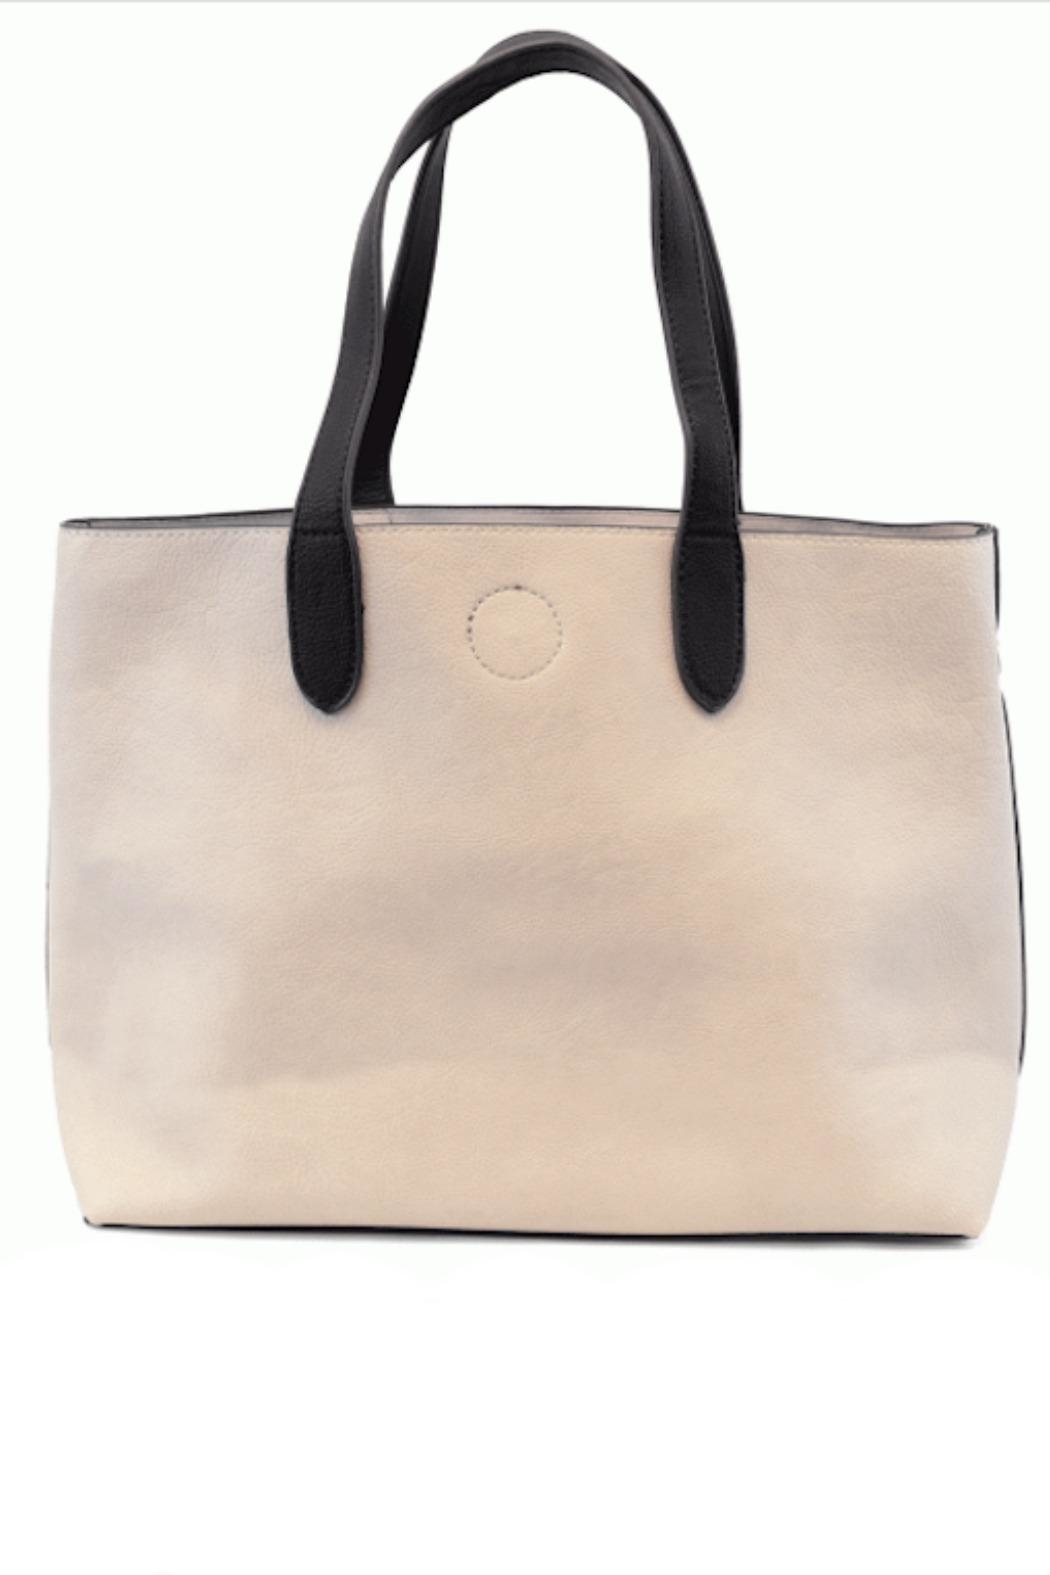 Joy Susan Accessories Two-Toned Tote - Main Image